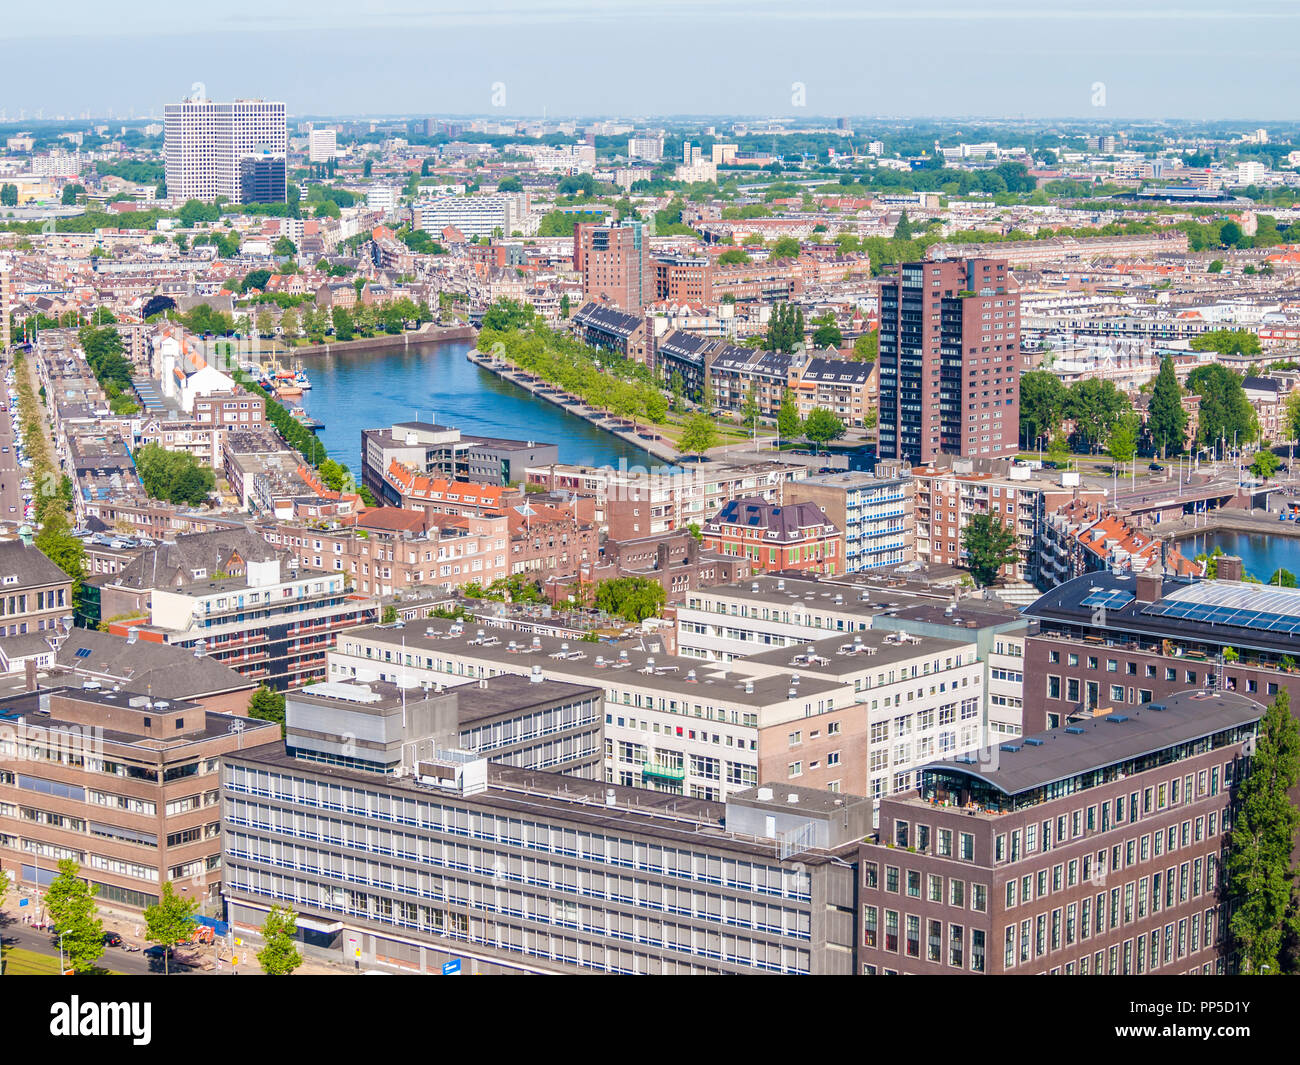 panoramic view of the city and canal of Rotterdam in the Netherlands Holland - Stock Image